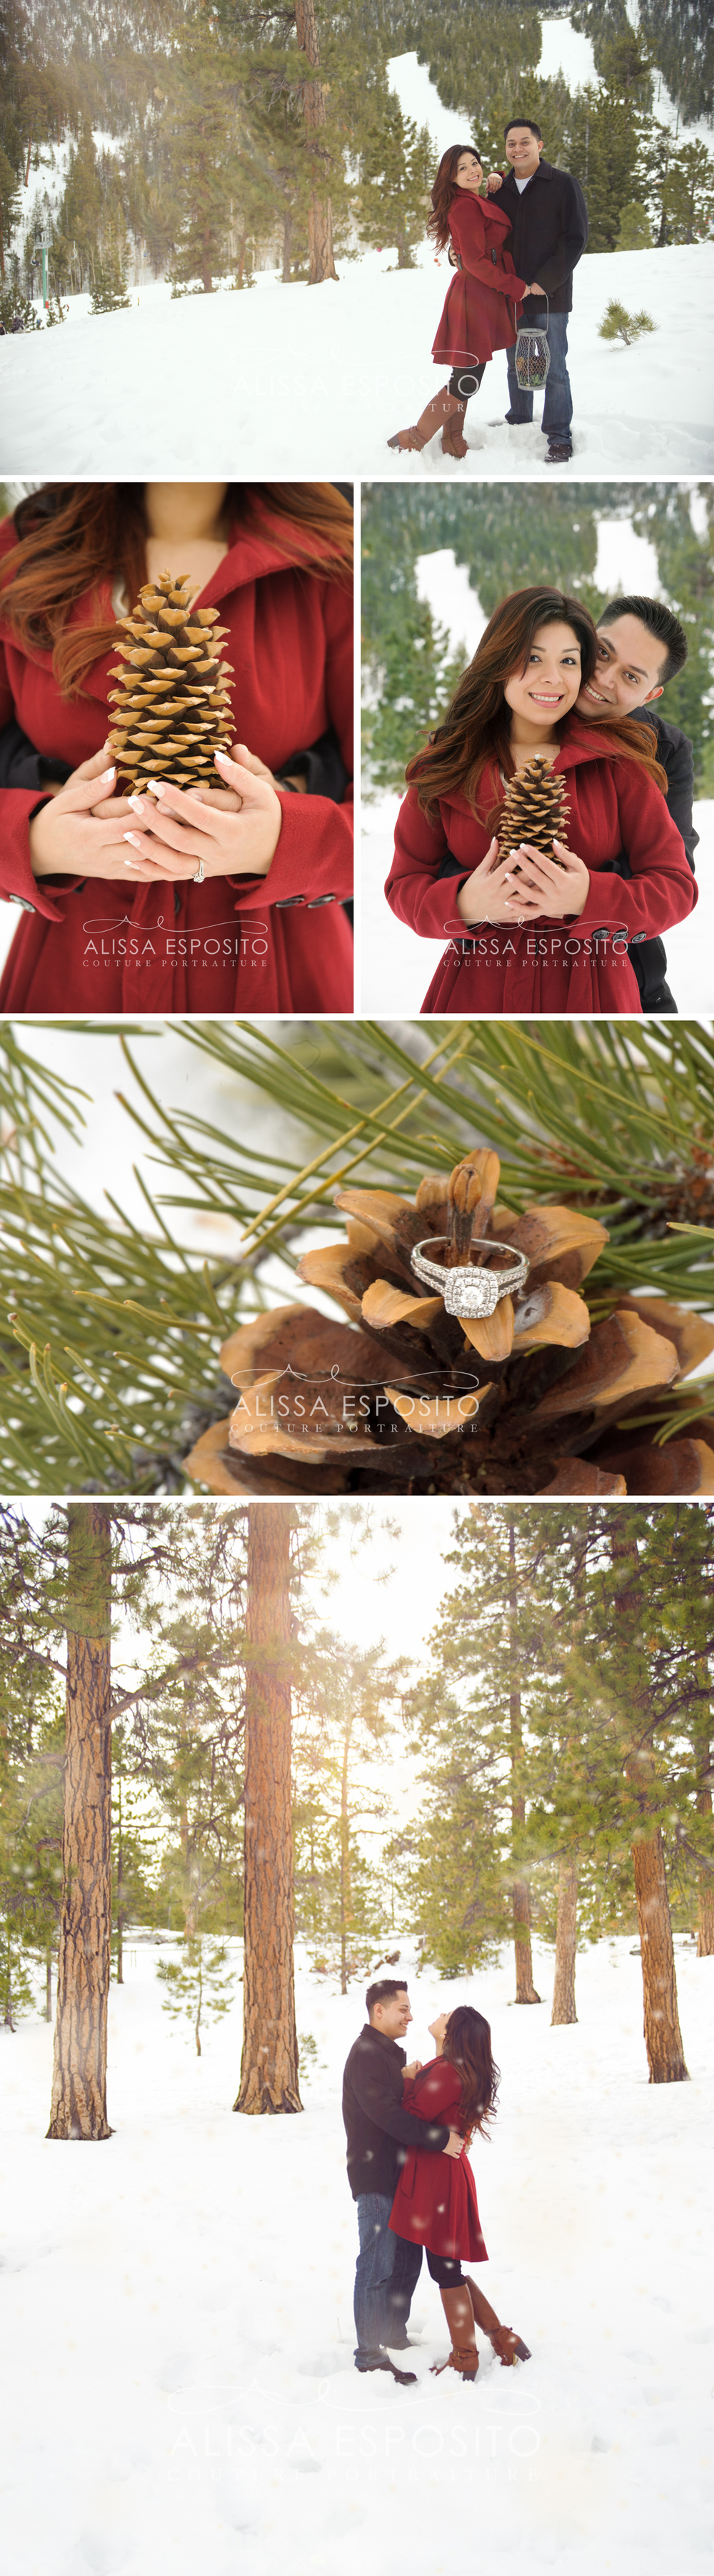 Alissa Esposito Photography Las Vegas Engagement and Wedding Photographer Mt. Charleston, Nevada Snow Winter Engagement Session |  www.alissaesposito.com